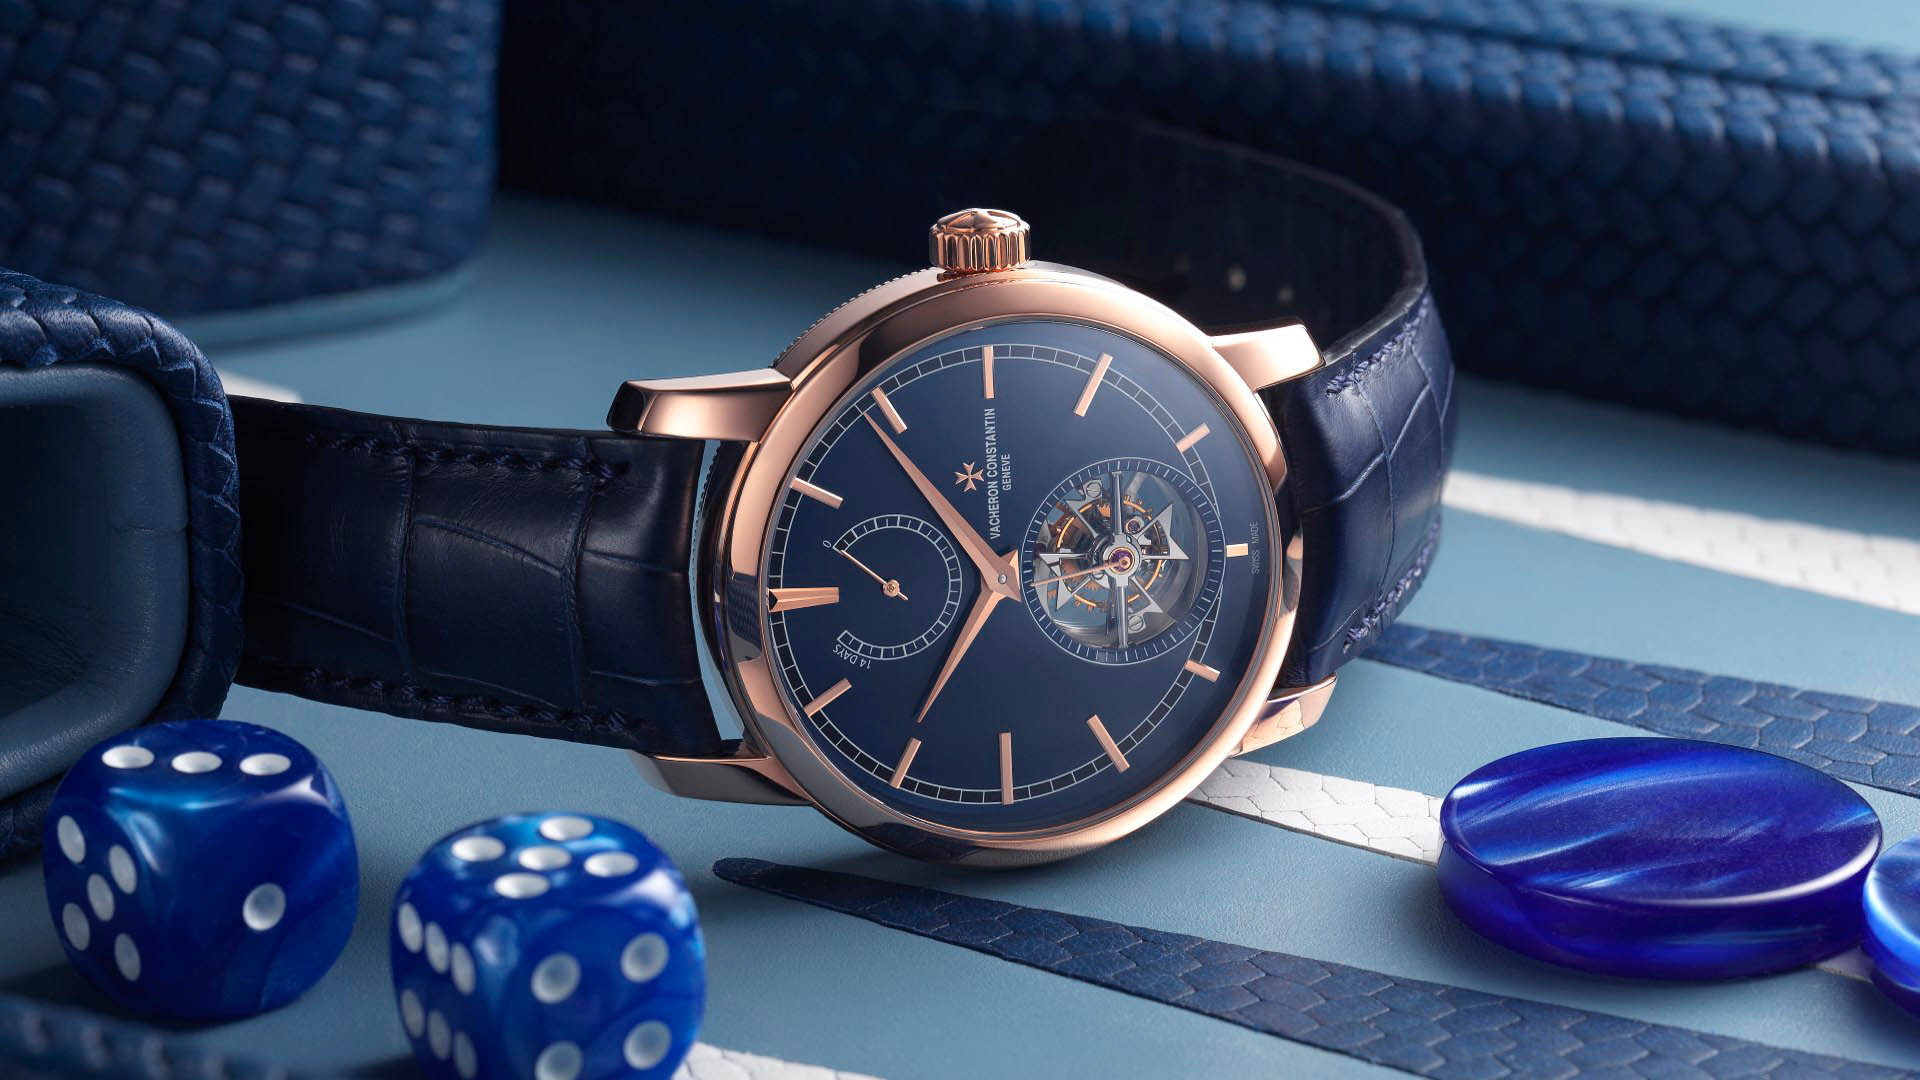 Bucherer Blue Editions 14-Tage Tourbillon von Vacheron Constantin.